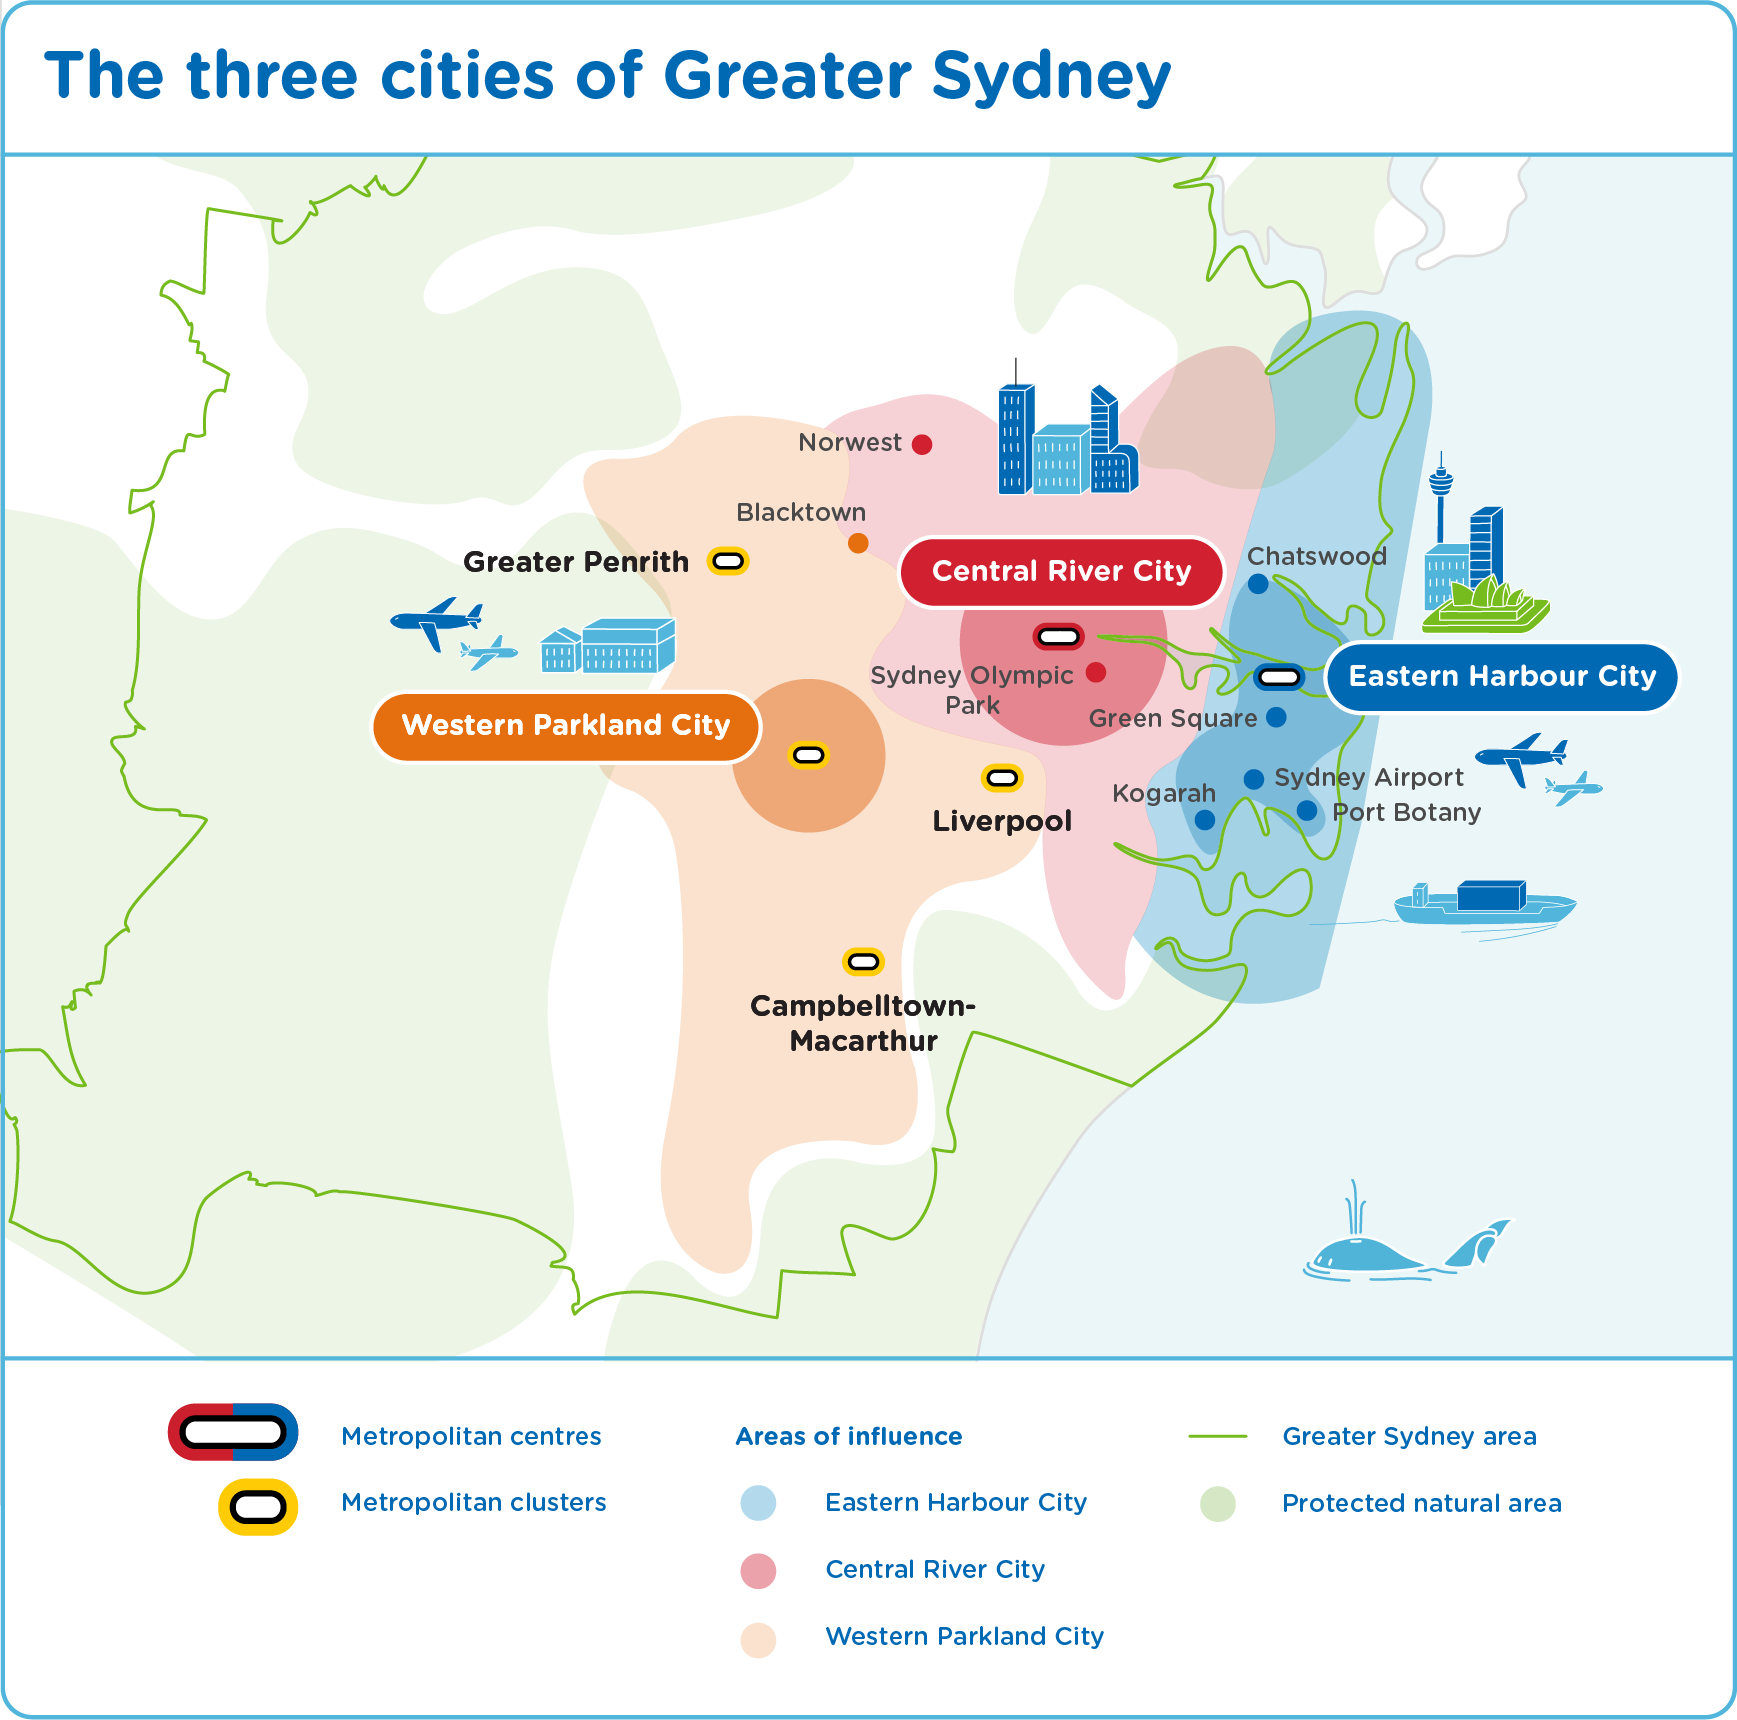 The three cities of Greater Sydney